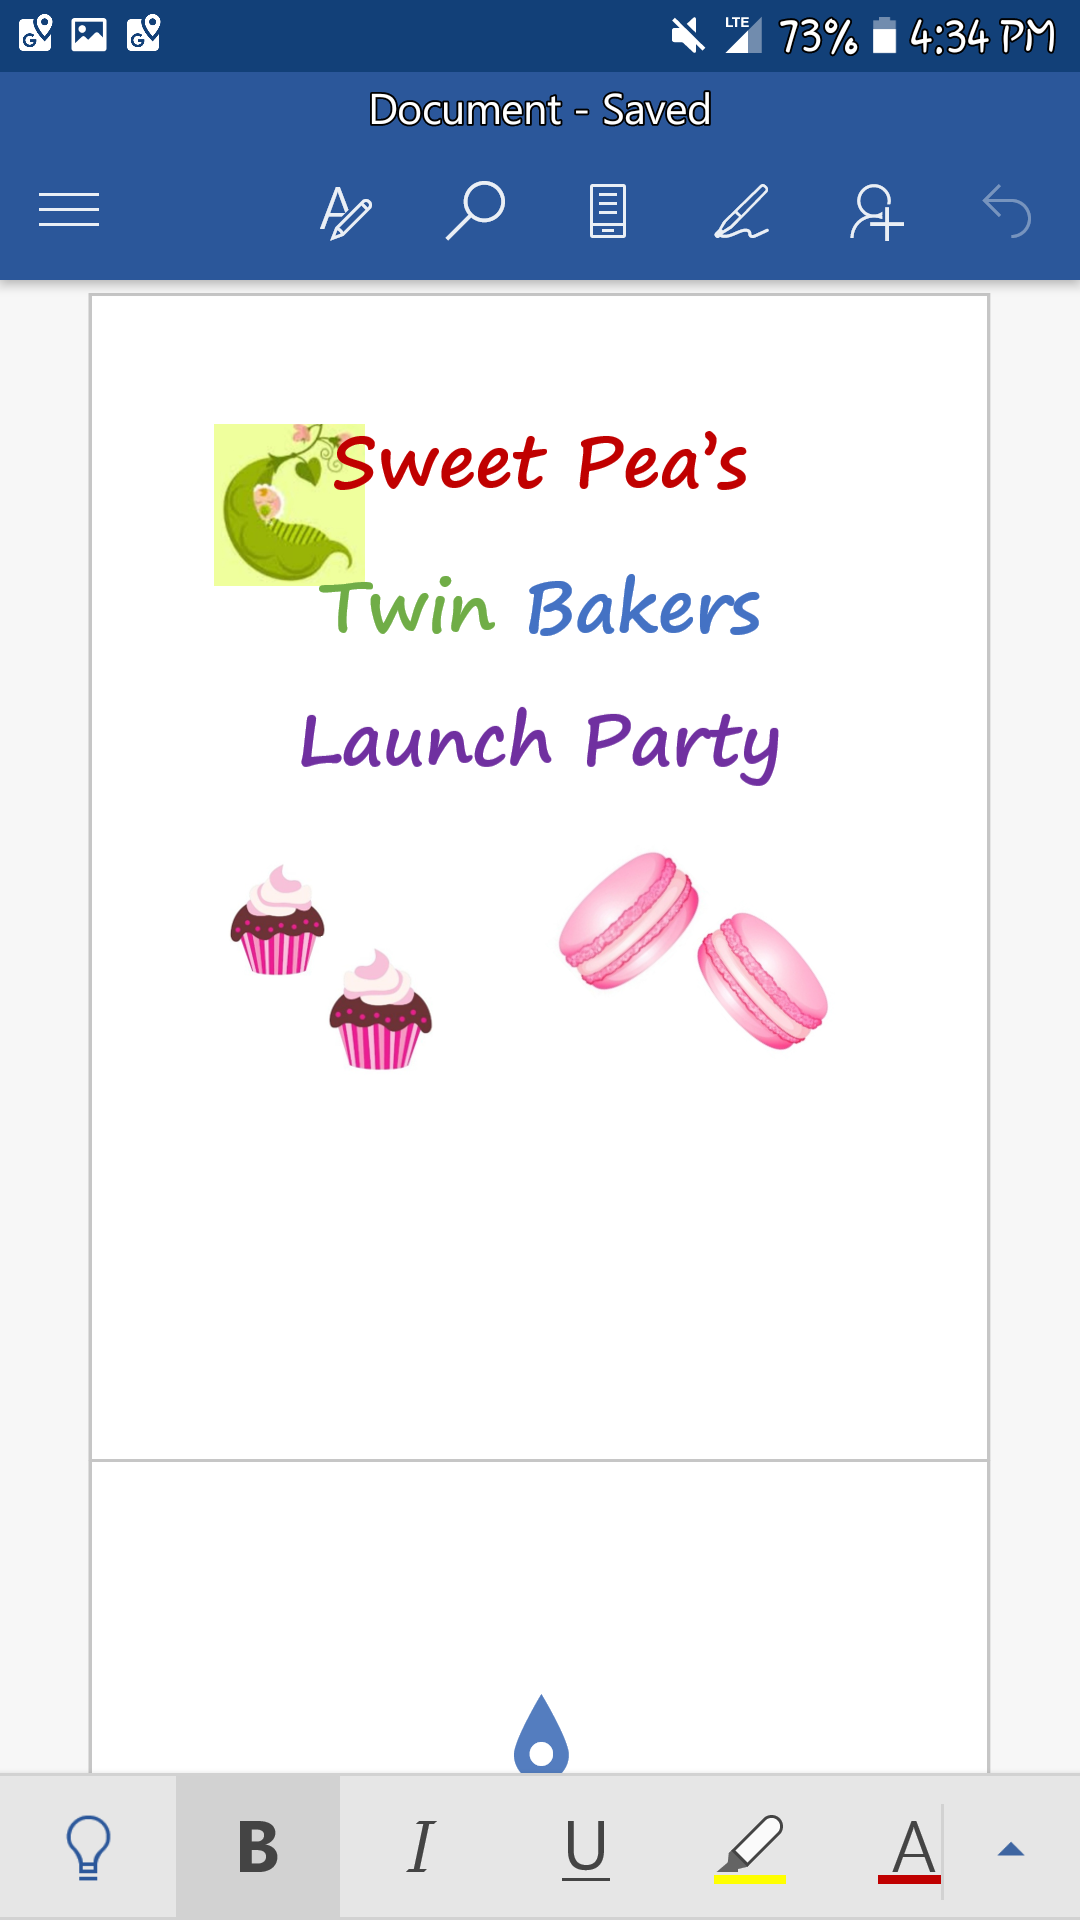 Sweet Peas Twin Bakers Launch Party